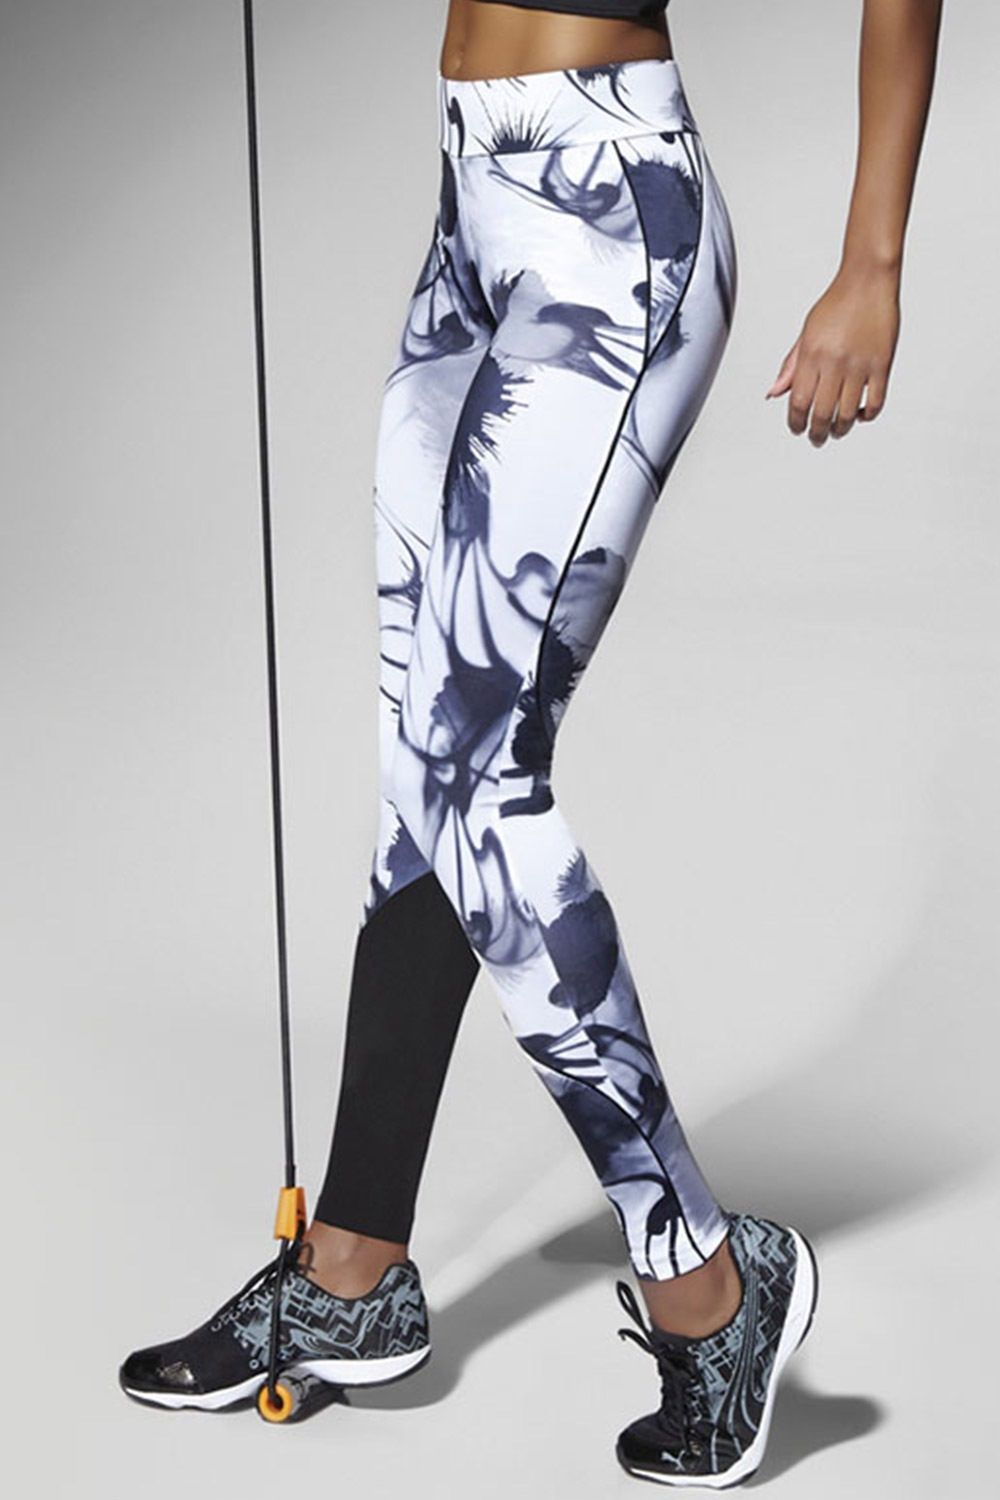 Calypso sport leggings